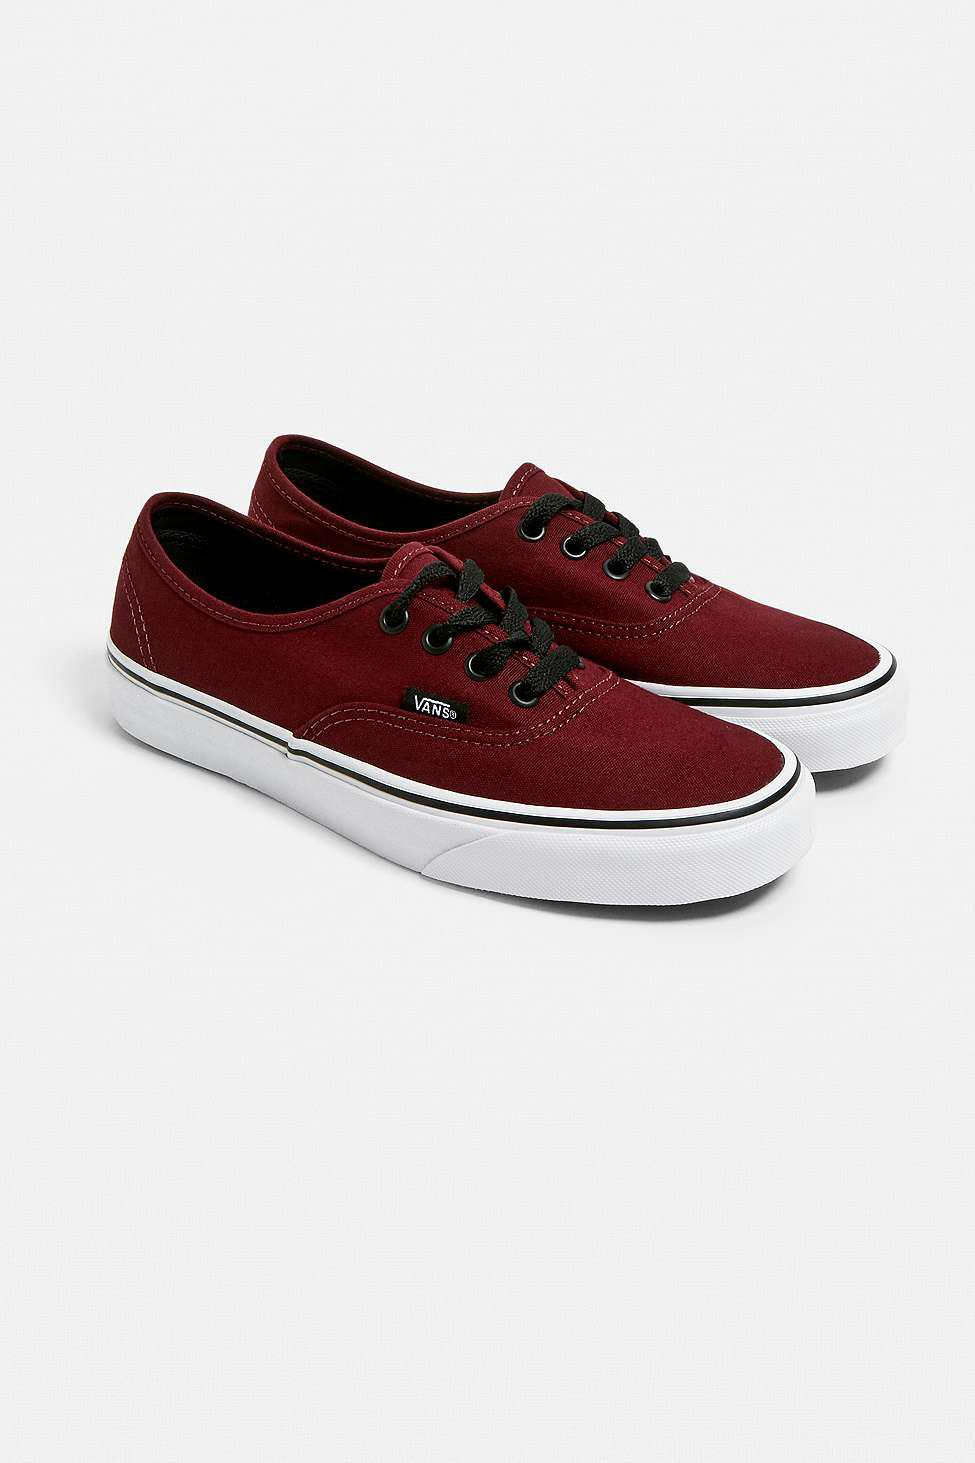 Vans - Red Authentic Port Trainers - Womens Uk 3 - Lyst. View fullscreen 34fefbe39